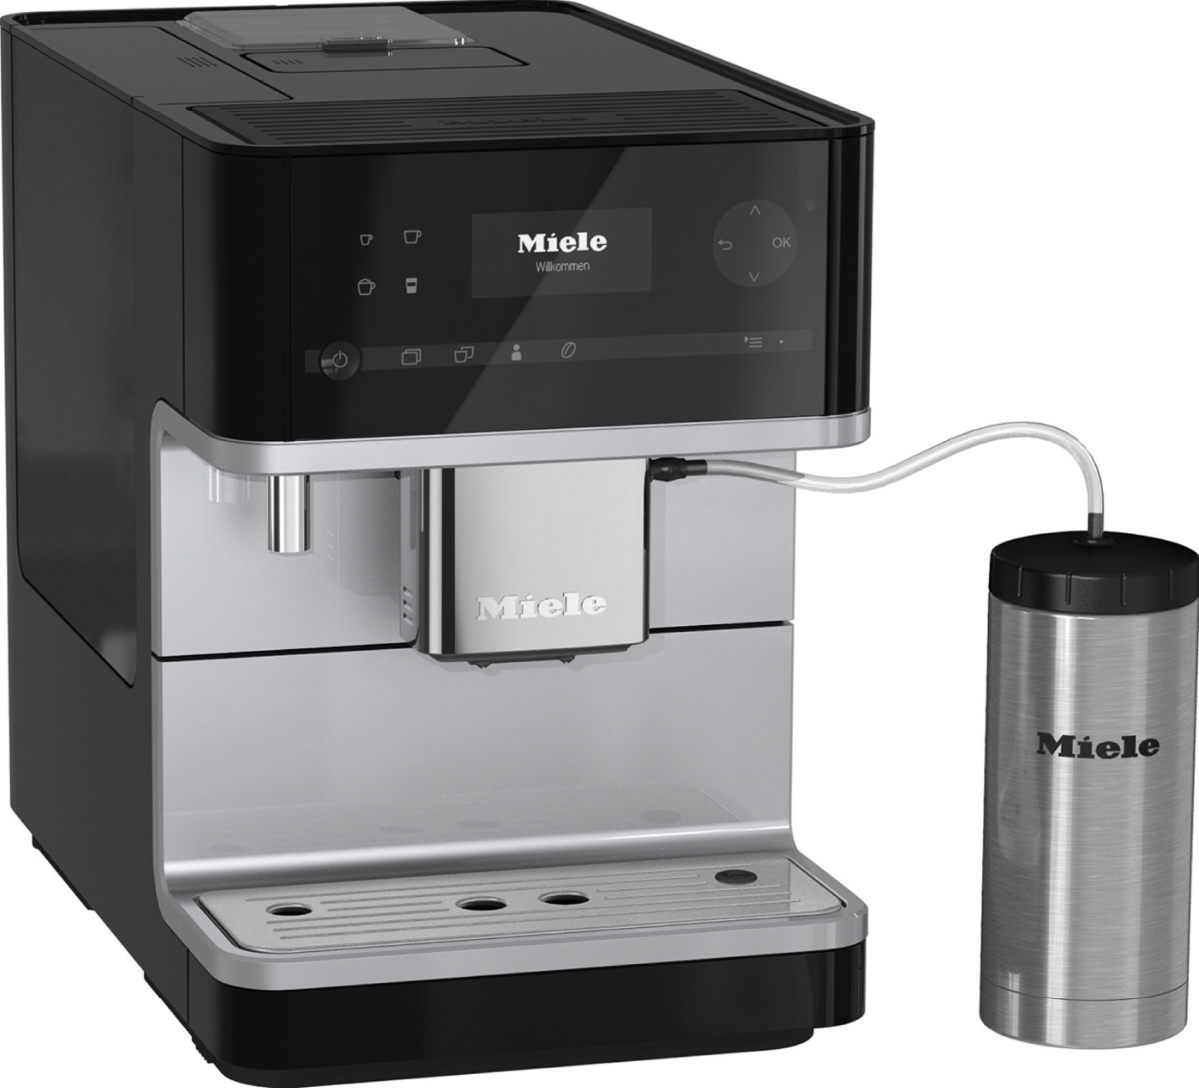 Cm 6350 Countertop Coffee Machine With Onetouch For Two Feature And Integrated Cup Warmer